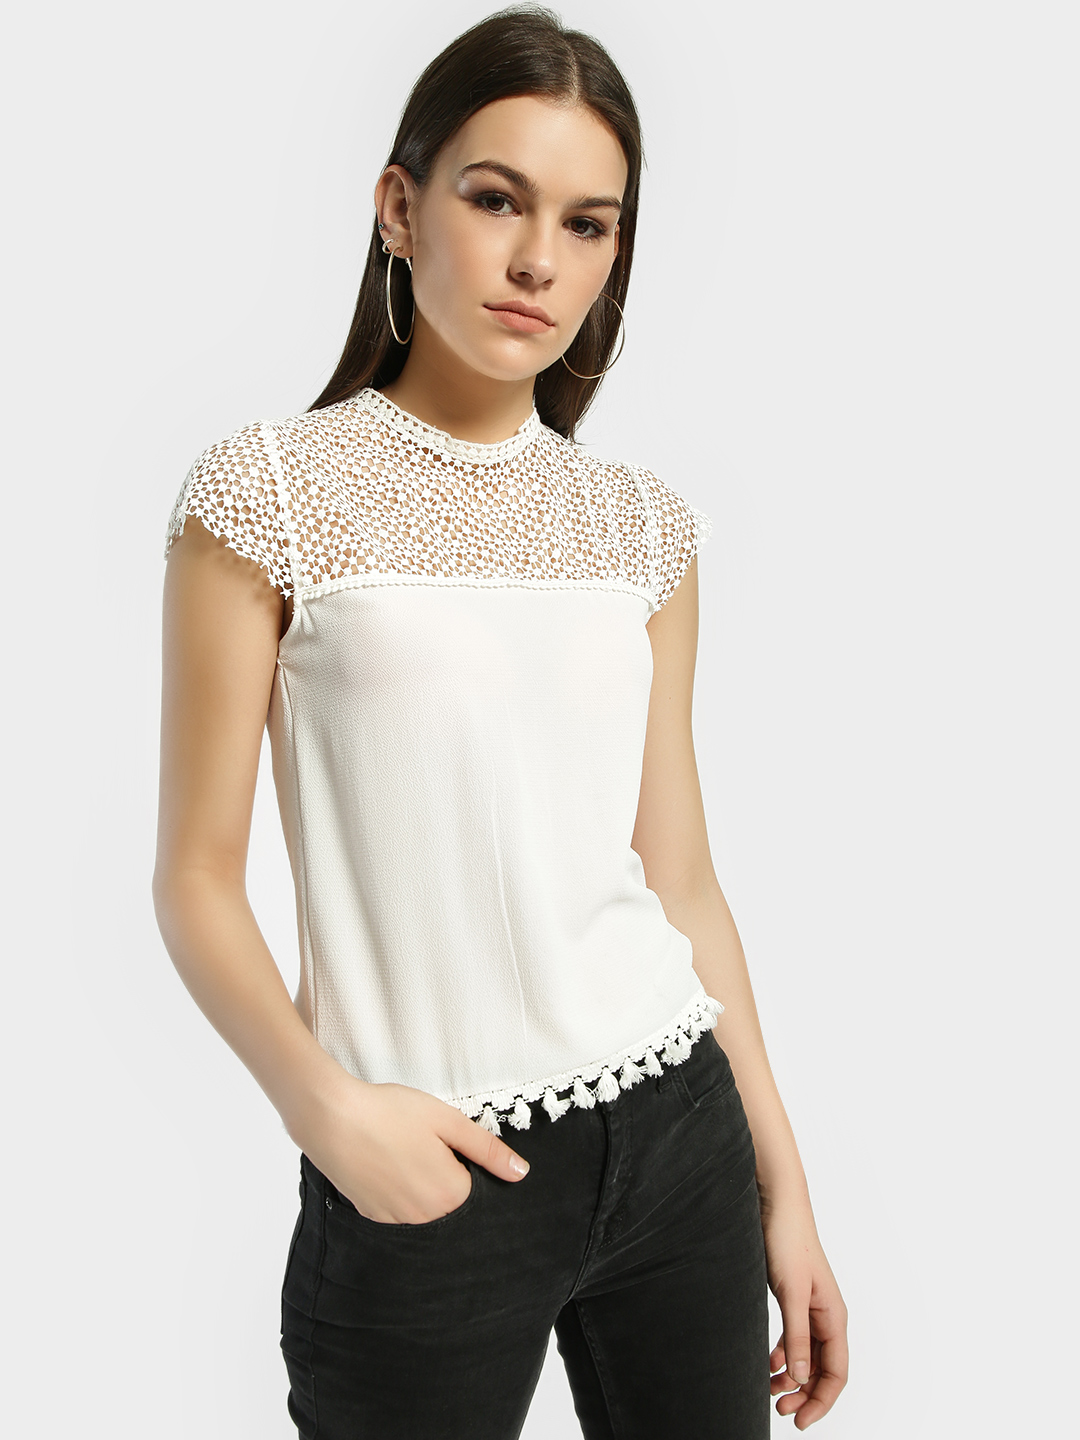 Privy League White Crochet Lace Detail Blouse 1